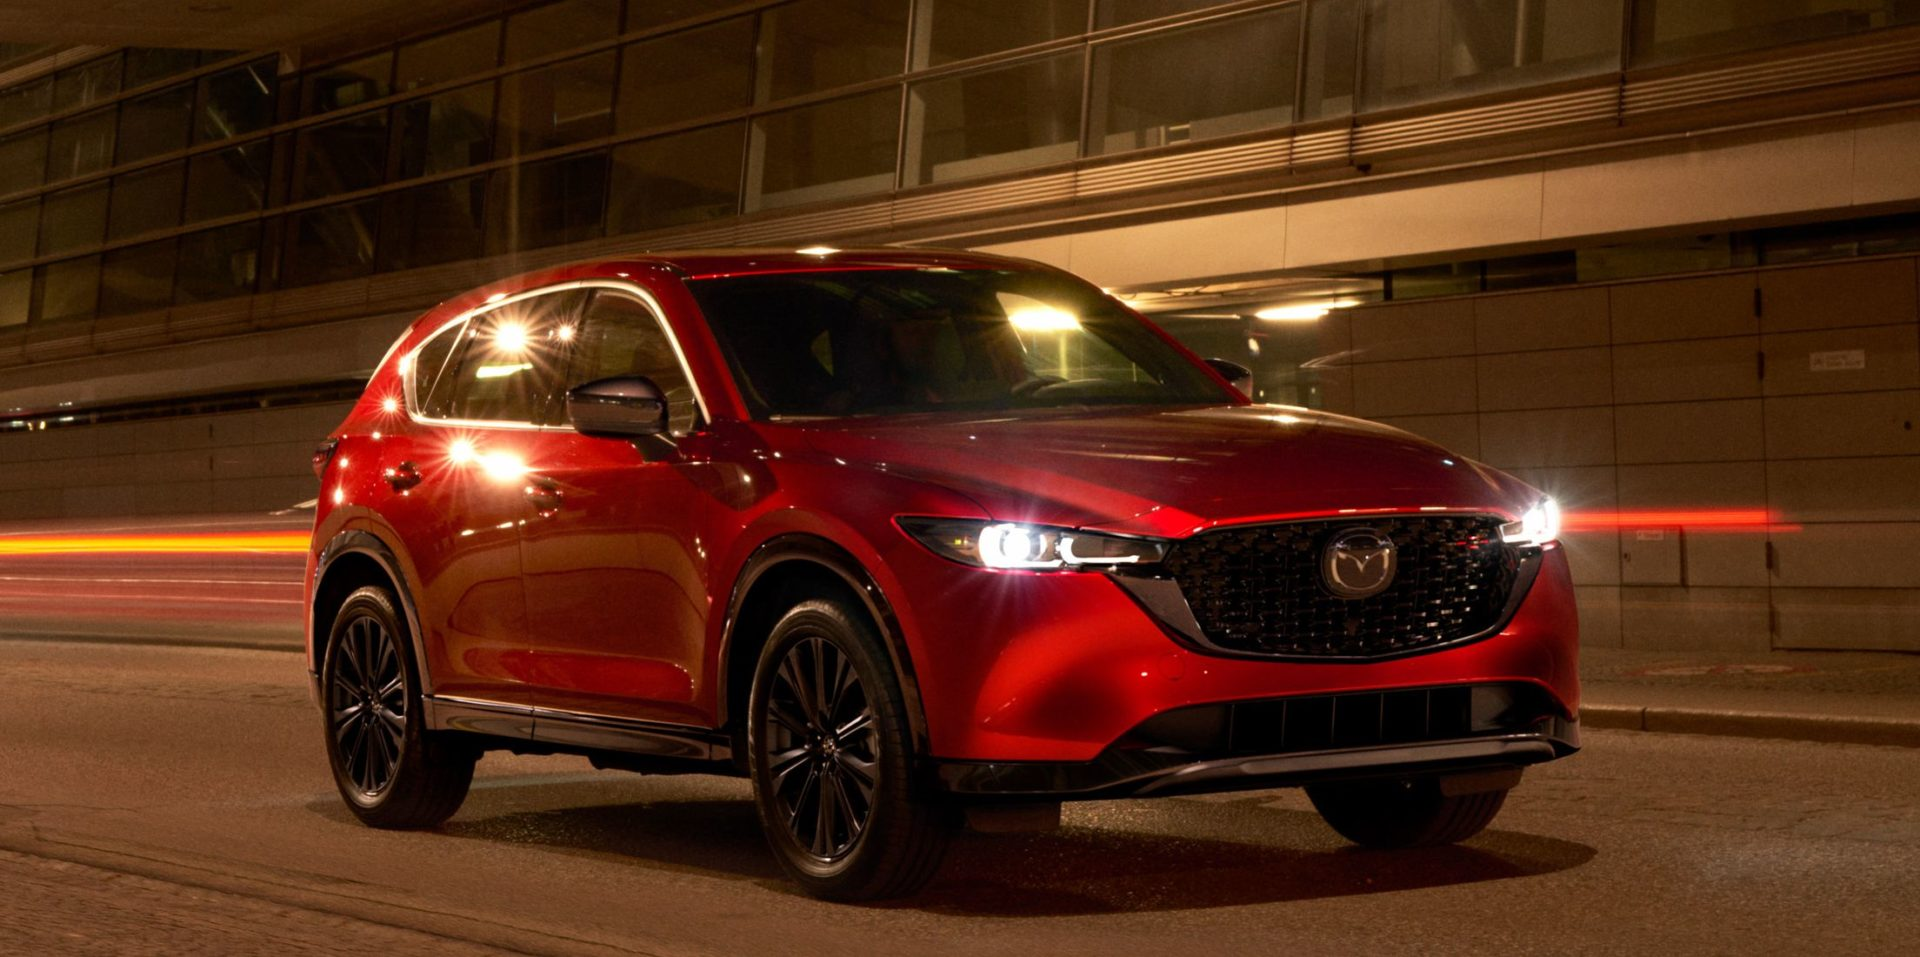 2022 Mazda CX-5 Adds Smoother Styling, Standard All-Wheel Drive